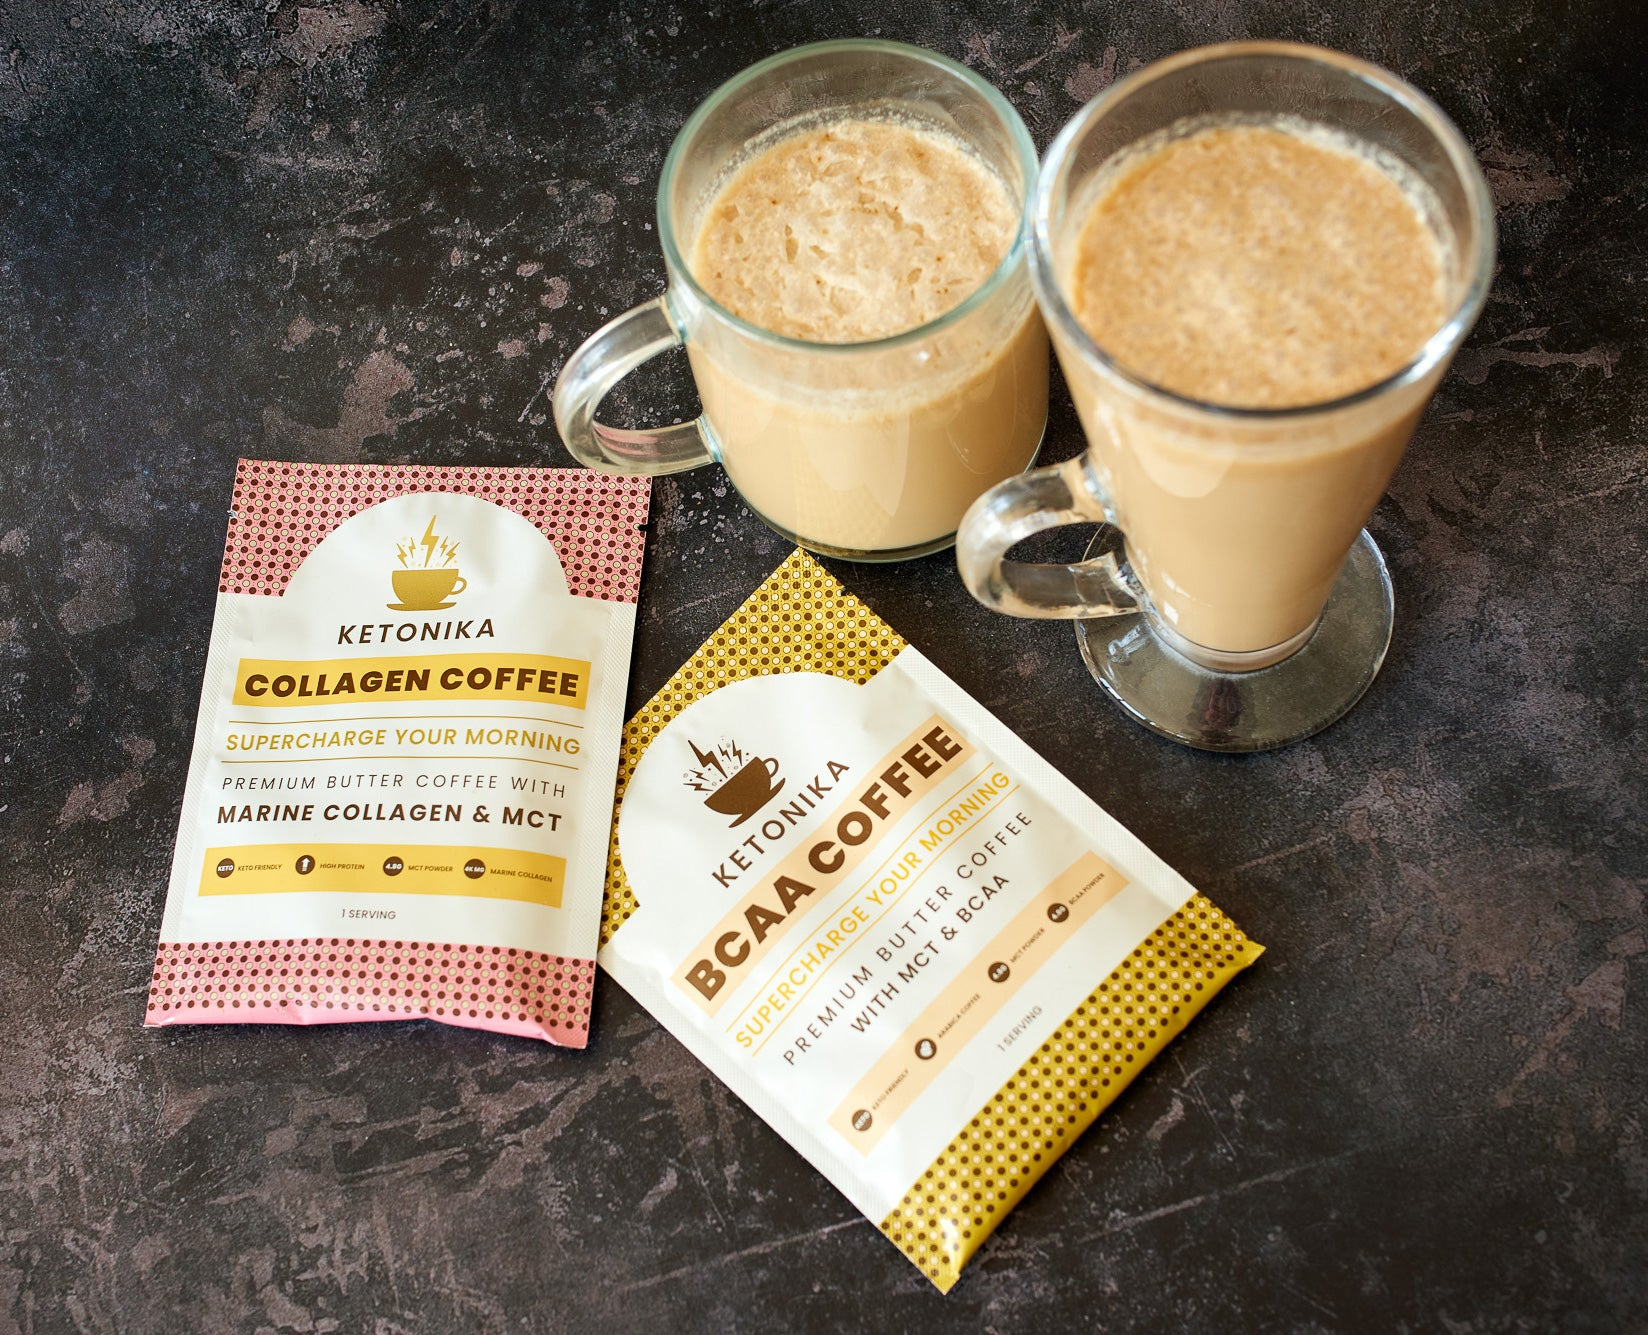 Ketonika Collagen butter coffee is great for healthy keto diets